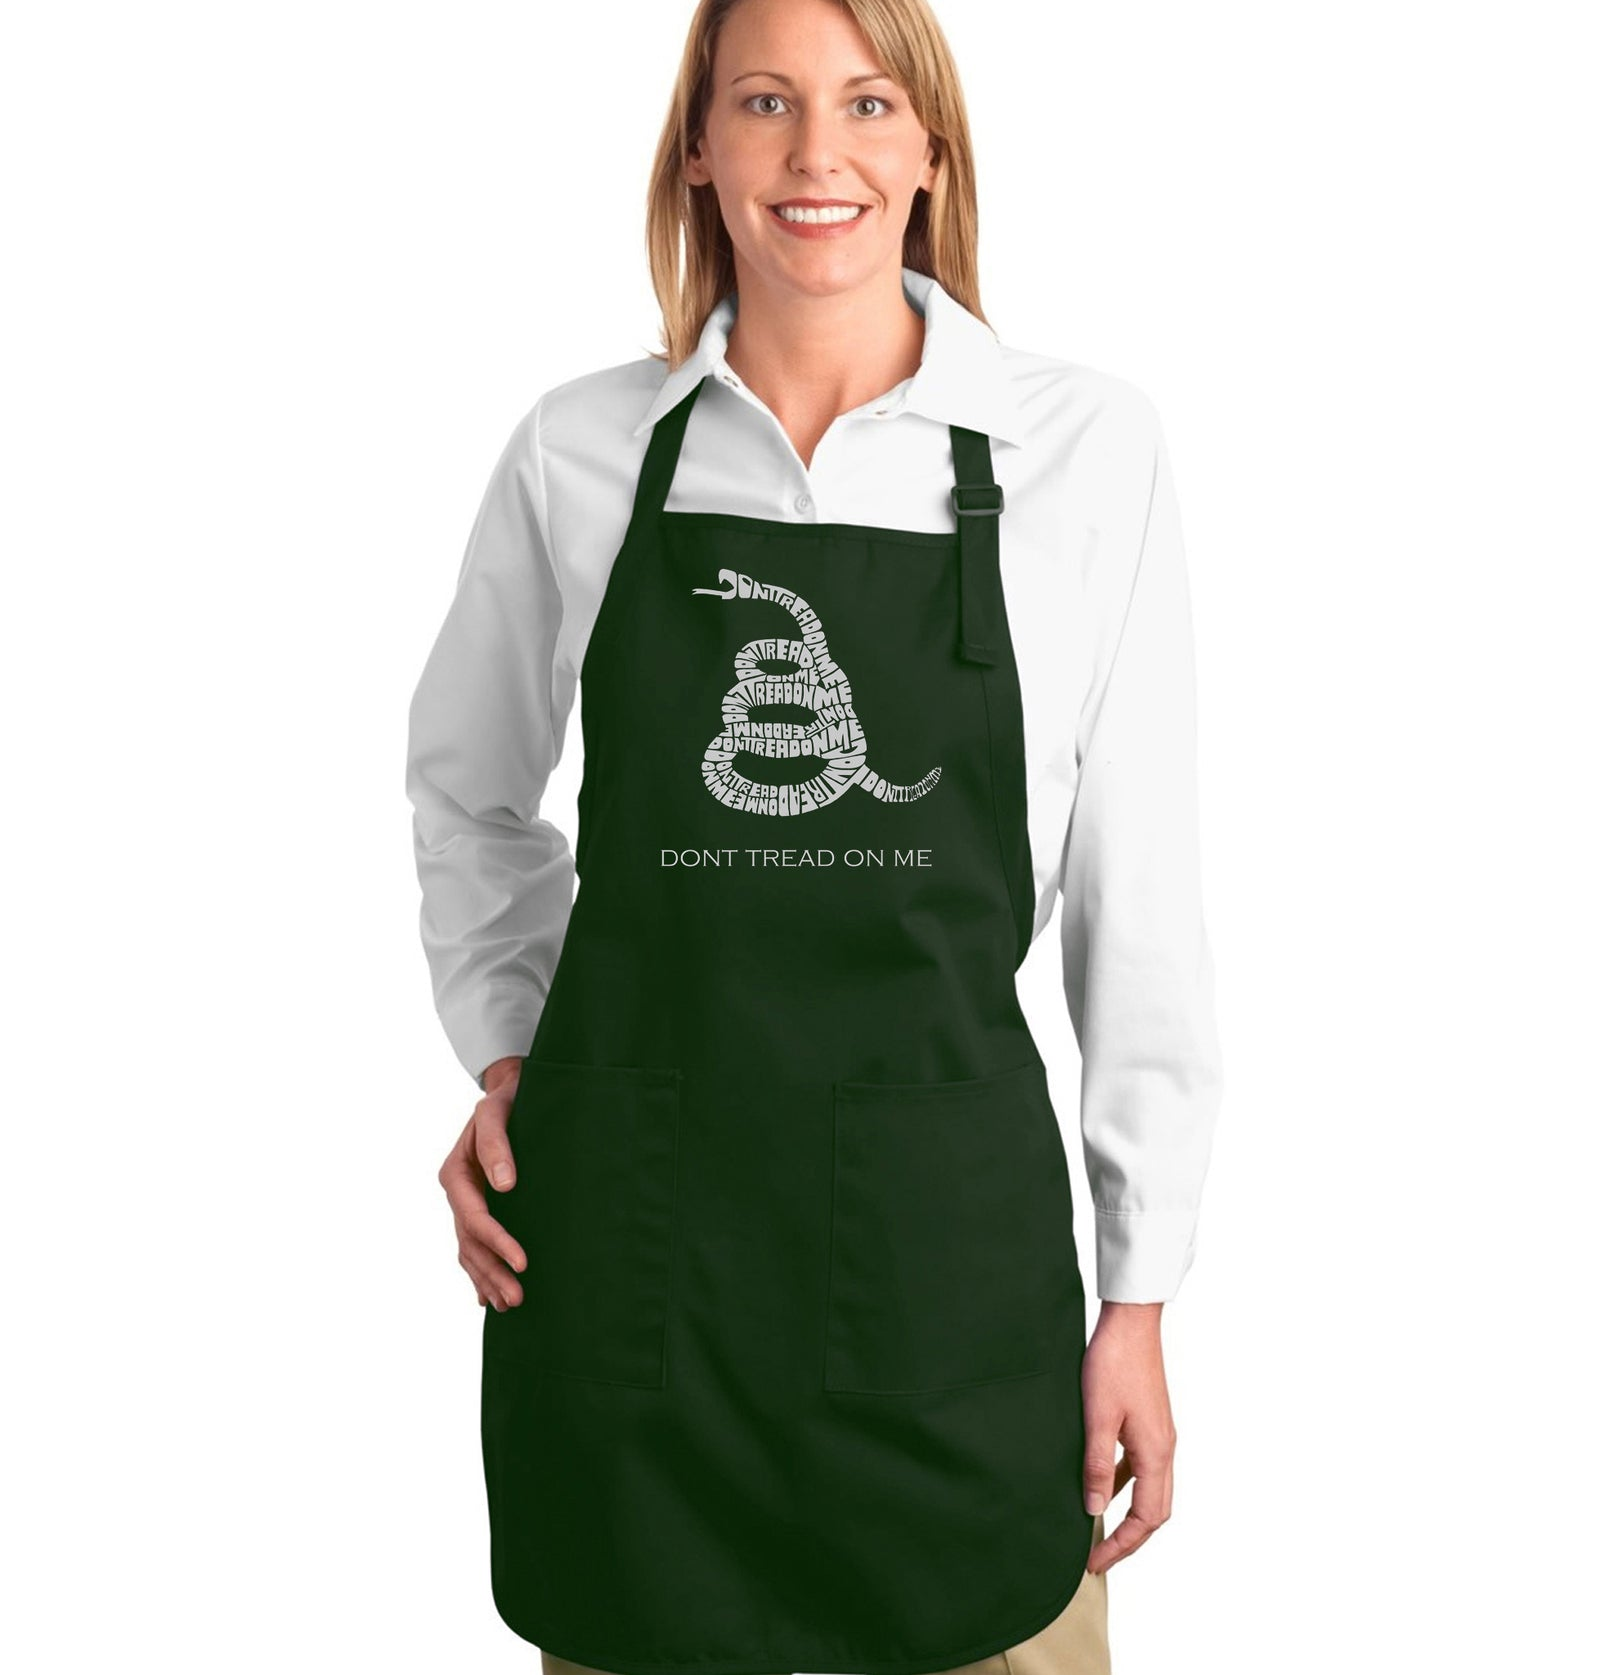 Full Length Apron - DONT TREAD ON ME